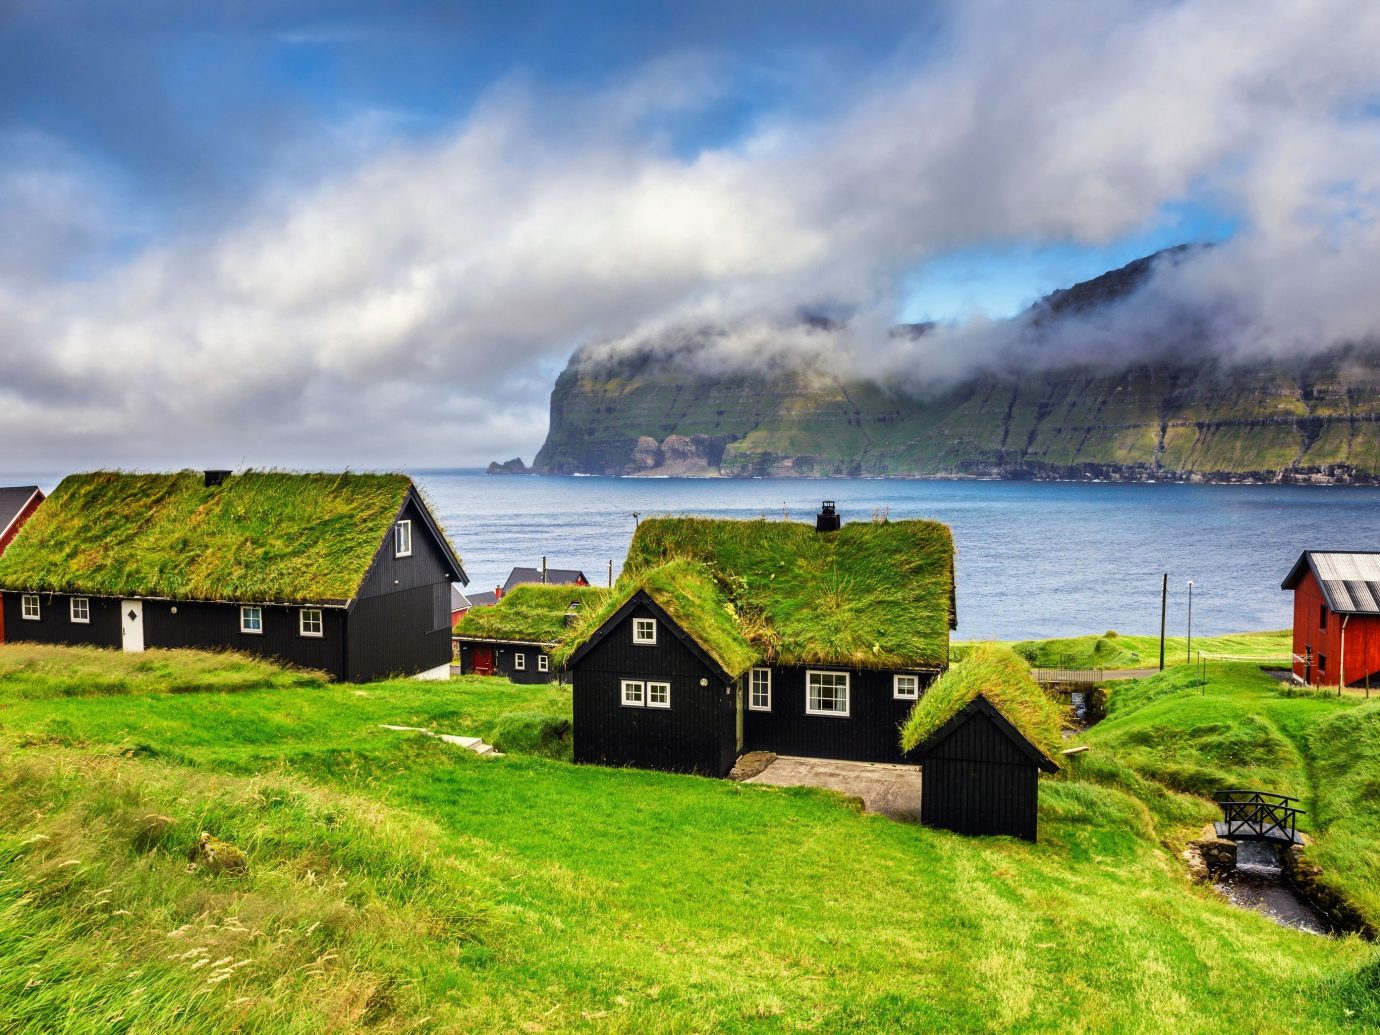 Trip Ideas grass sky outdoor highland Coast field cloud Sea green hill rural area loch old mountain landscape grassy mountain range fjord bay terrain waterway Farm house lush clouds